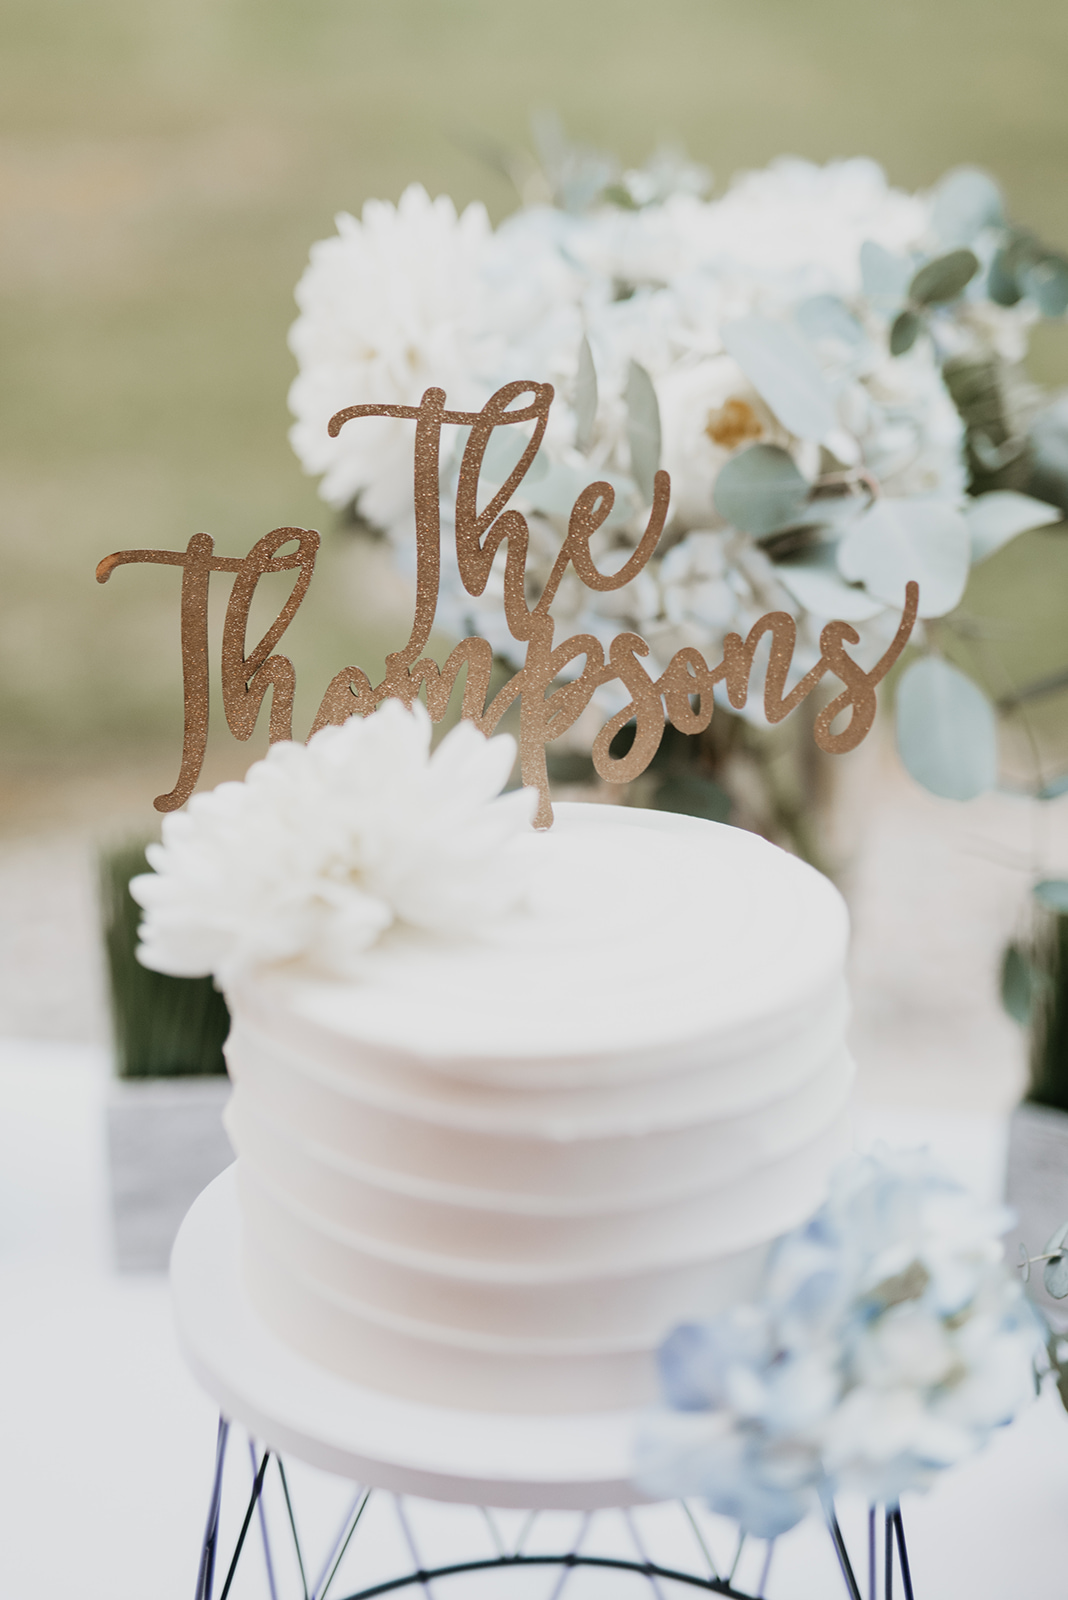 Thompson Wedding in Seattle, Washington - Cake Topper